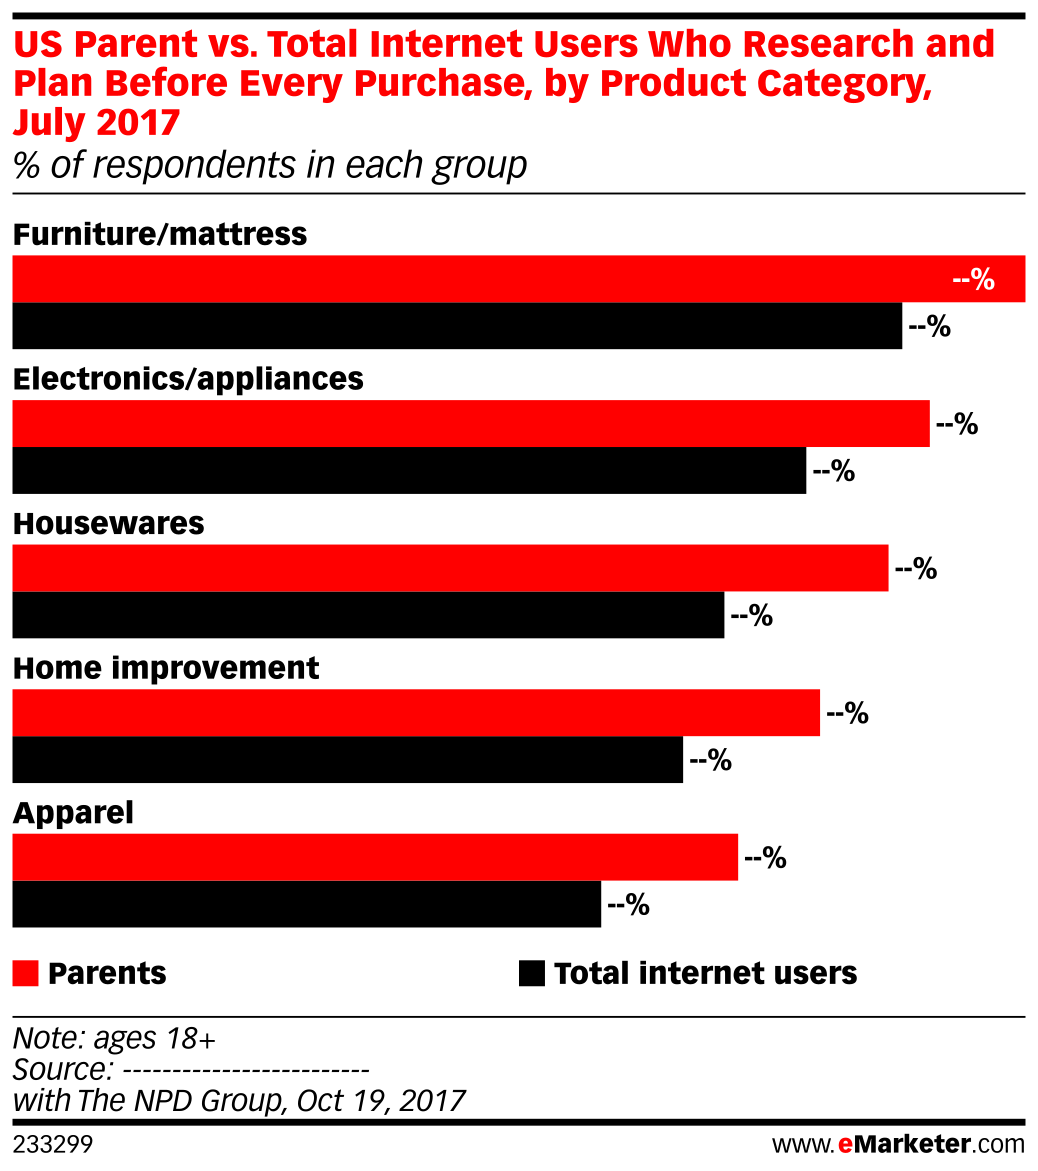 US Parent vs. Total Internet Users Who Research and Plan Before Every Purchase, by Product Category, July 2017 (% of respondents in each group)